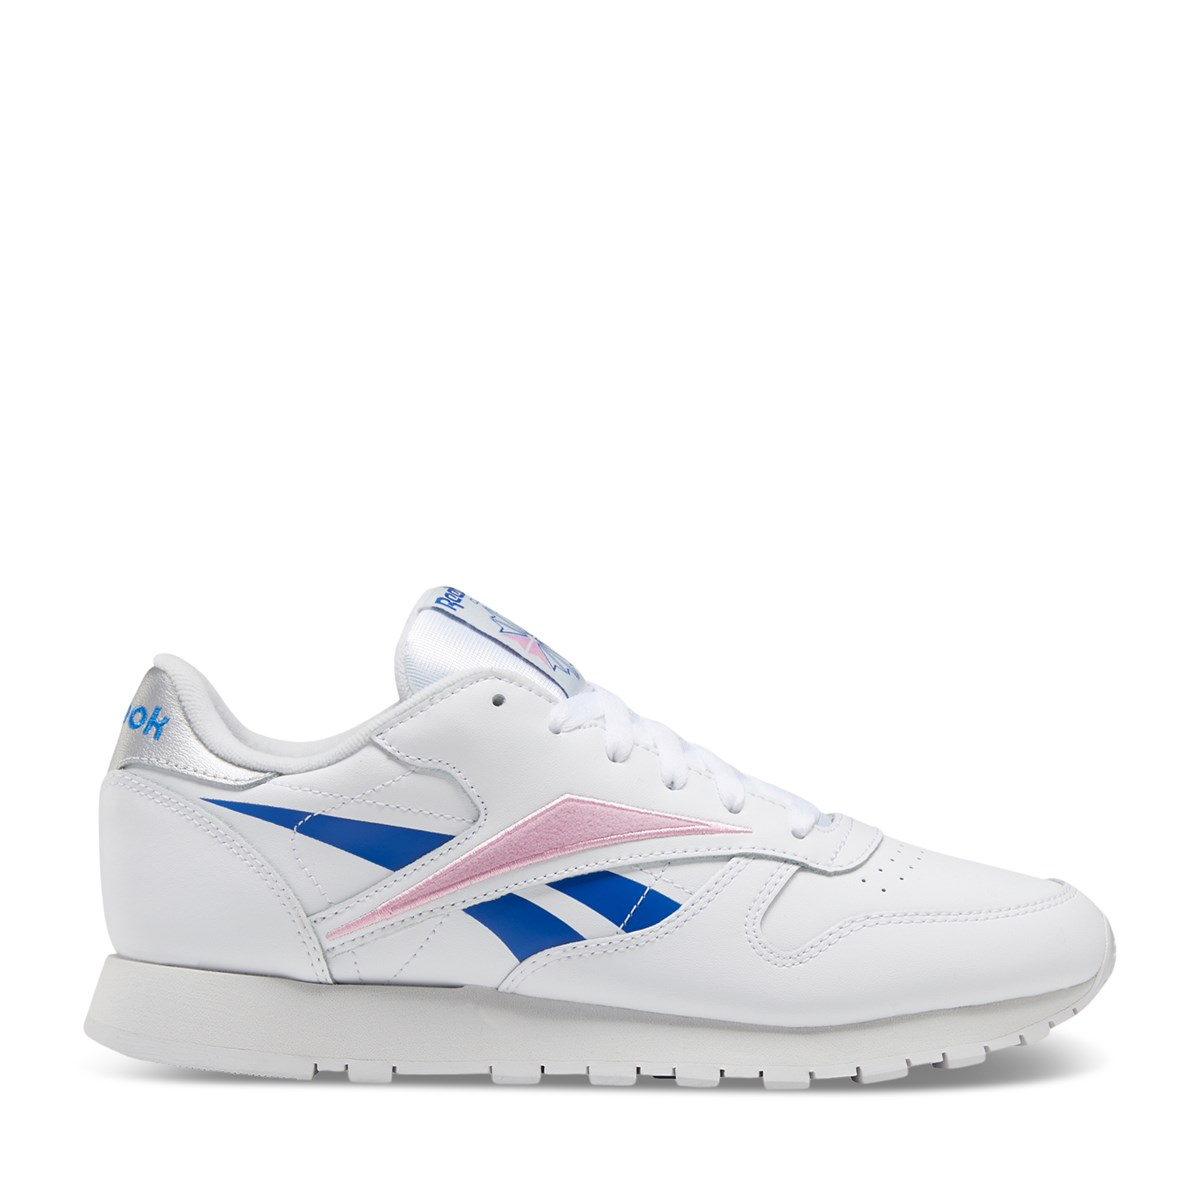 Women's Classic Leather Sneakers in White/Blue/Pink